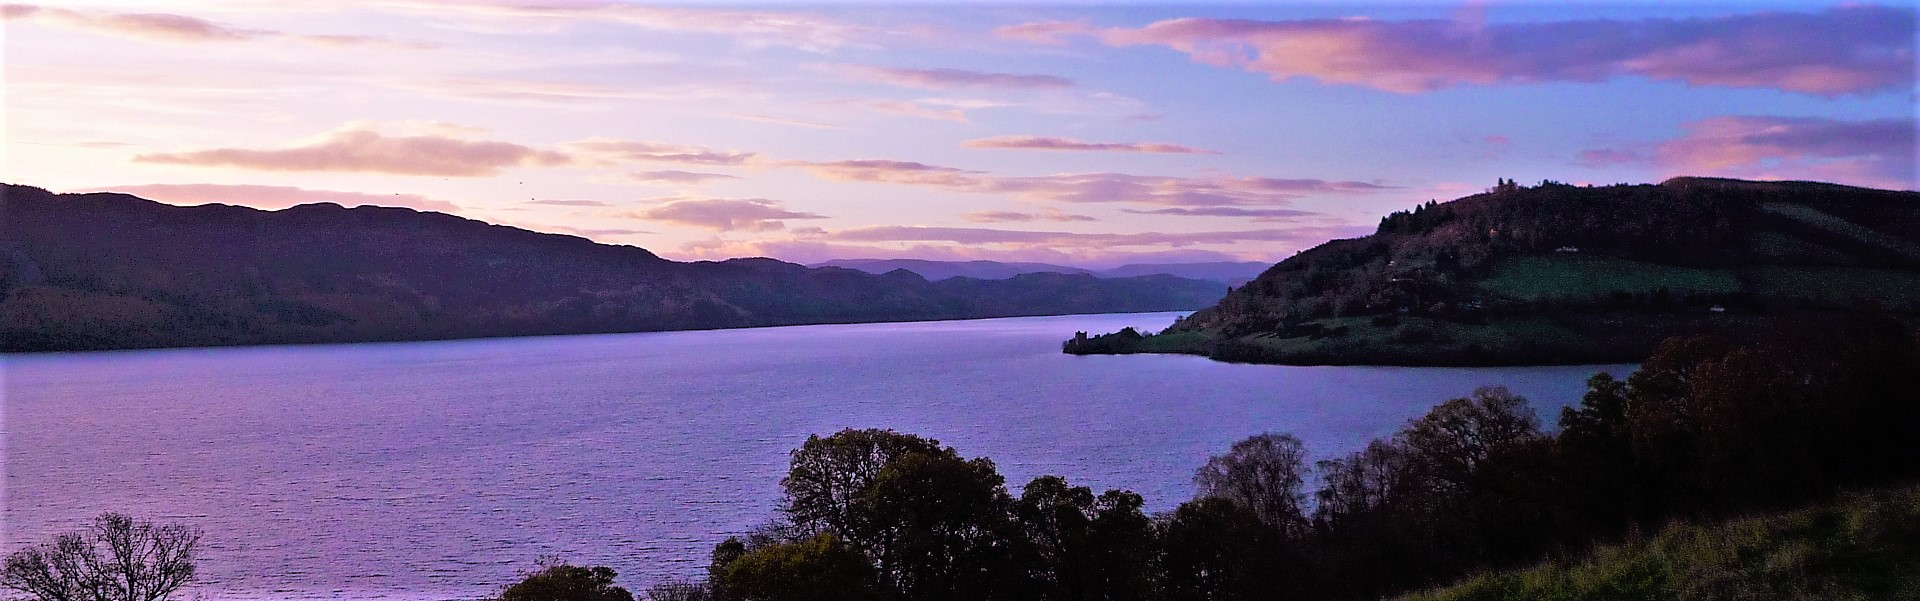 Sunset over Loch Ness on the Great Glen Way